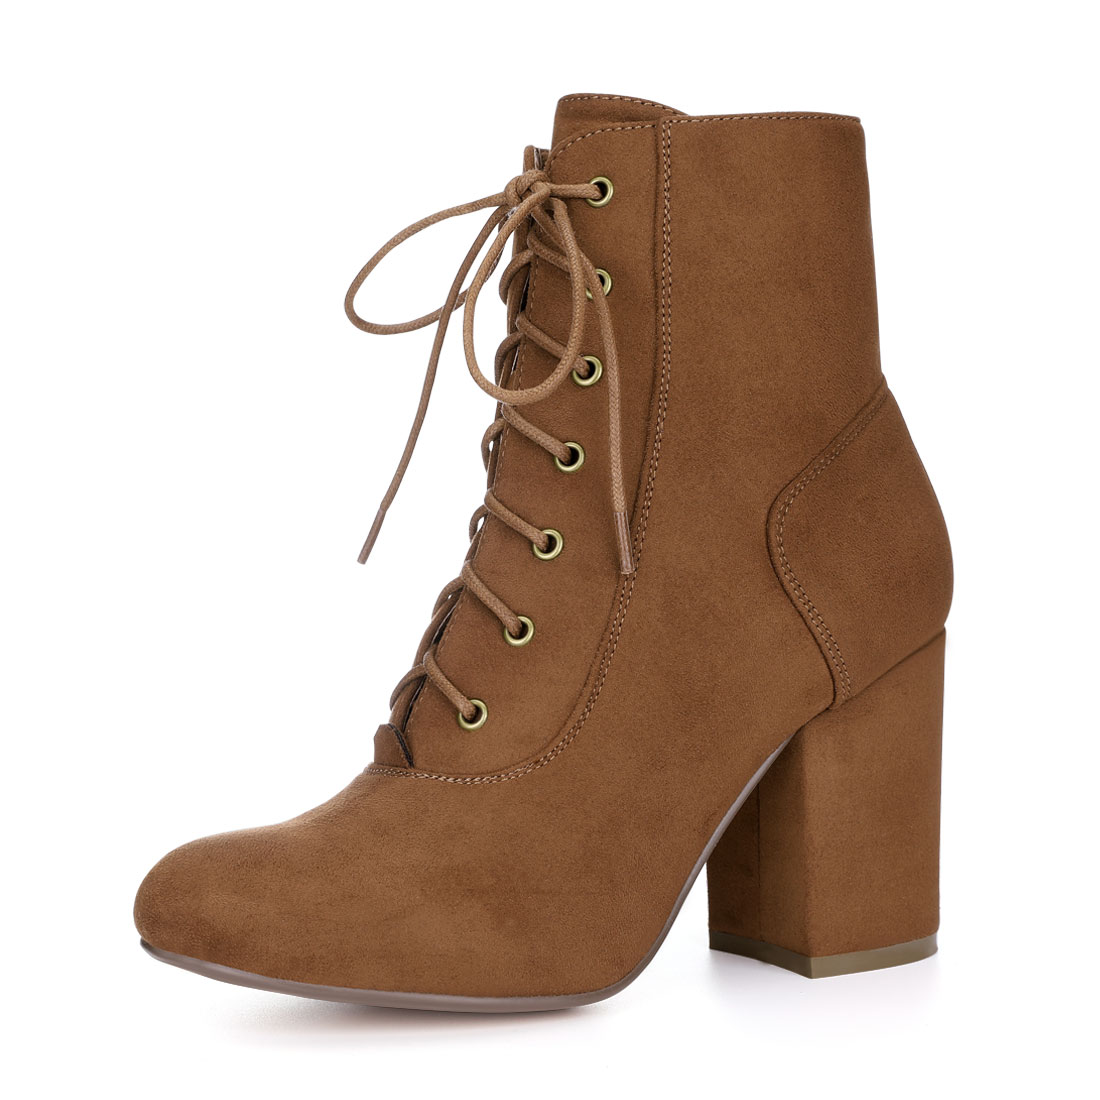 Allegra K Women Round Toe Chunky High Heel Lace Up Booties Brown US 5.5